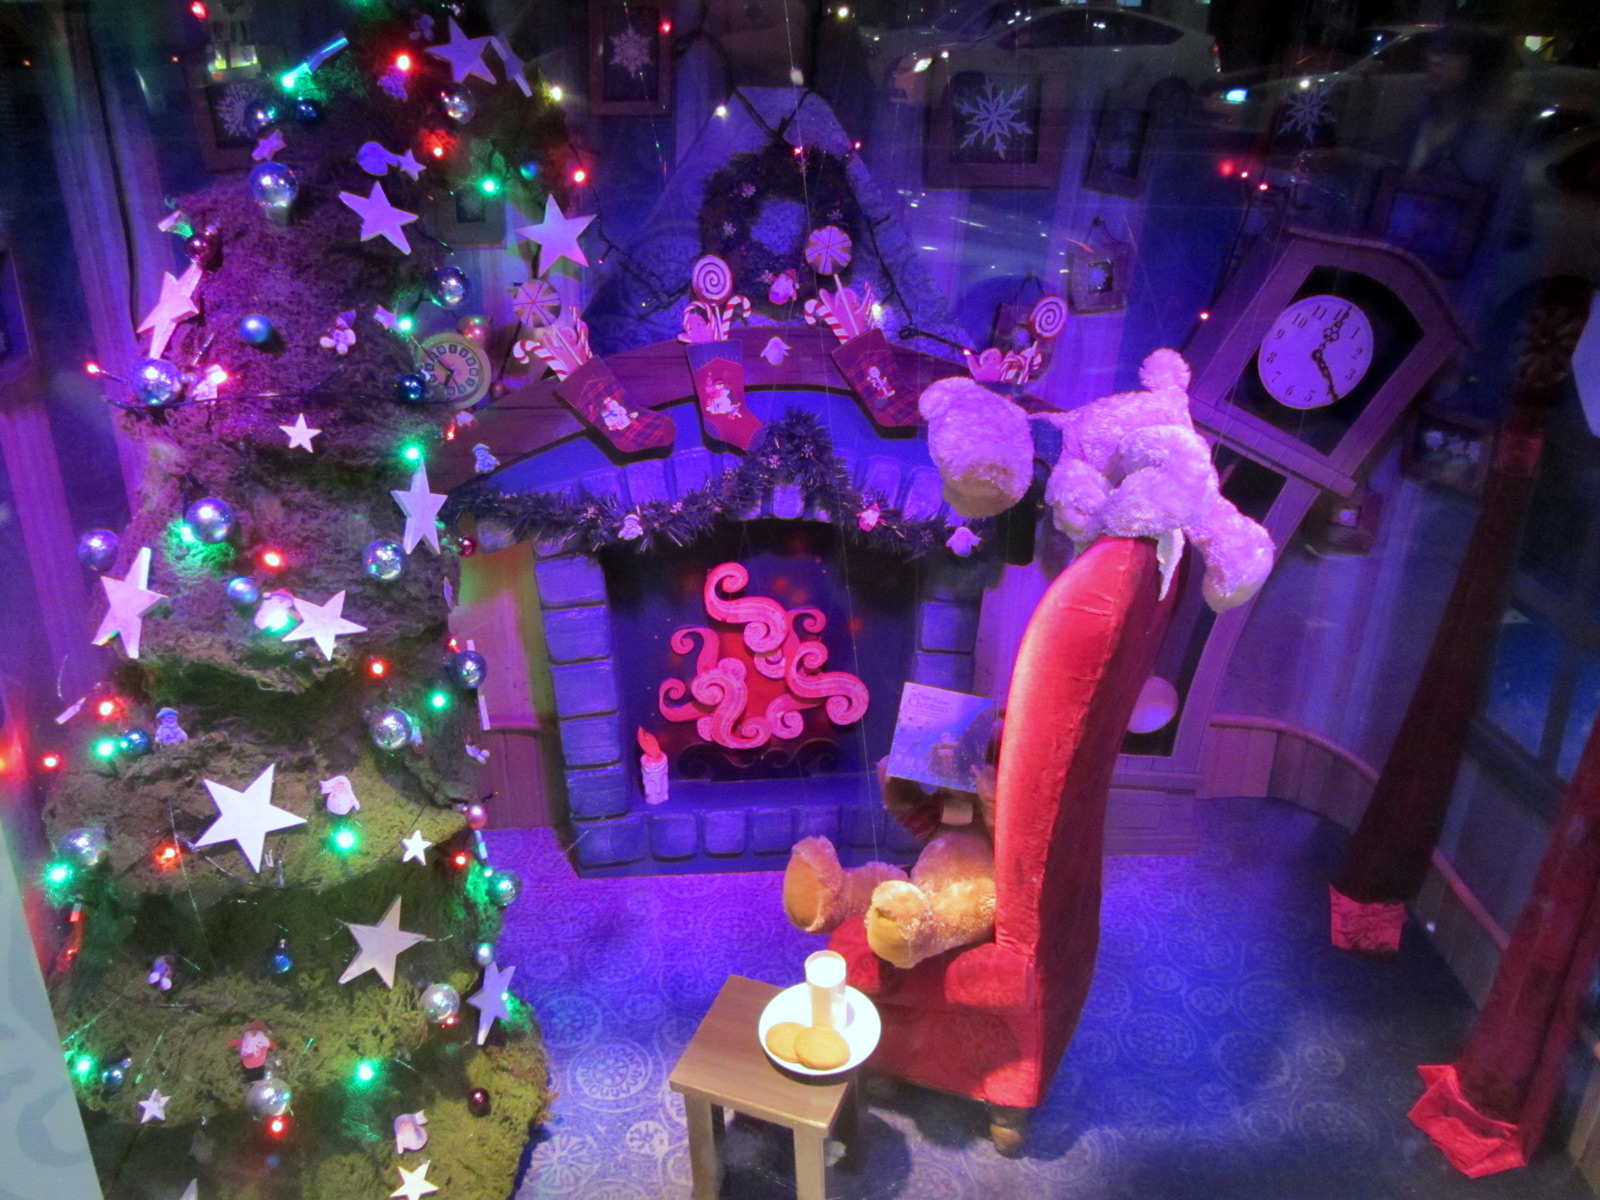 A window display, which describes a typical Christmas night, with some teddy bears waiting for Santa with milk and cookies near the adorned tree.